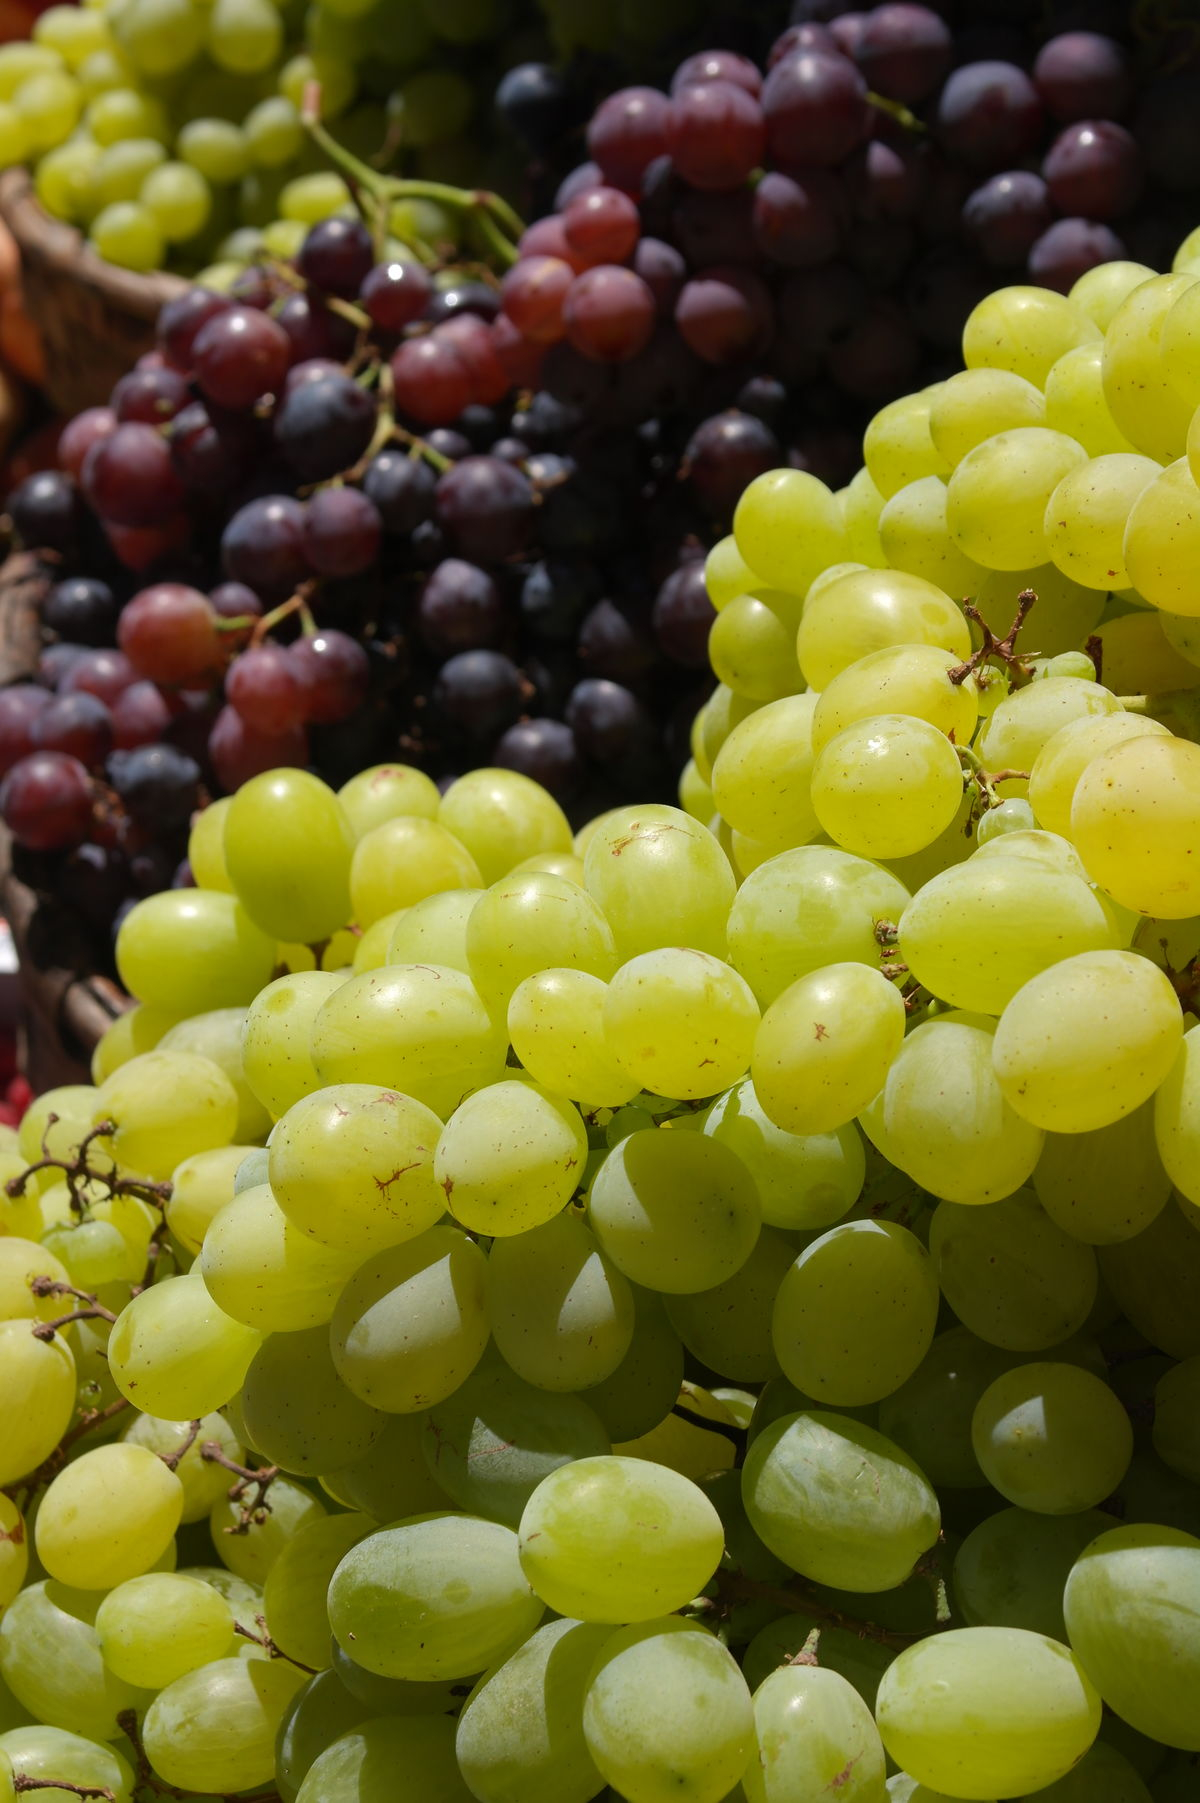 Abundance Backgrounds Bunch Close-up Day Focus On Foreground Food Freshness Fruit Fruit Of The Vine Full Frame Grape Green Color Growth Healthy Eating Large Group Of Objects Local Produce Nature No People Organic Outdoors Ripe Selective Focus The Shop Around The Corner